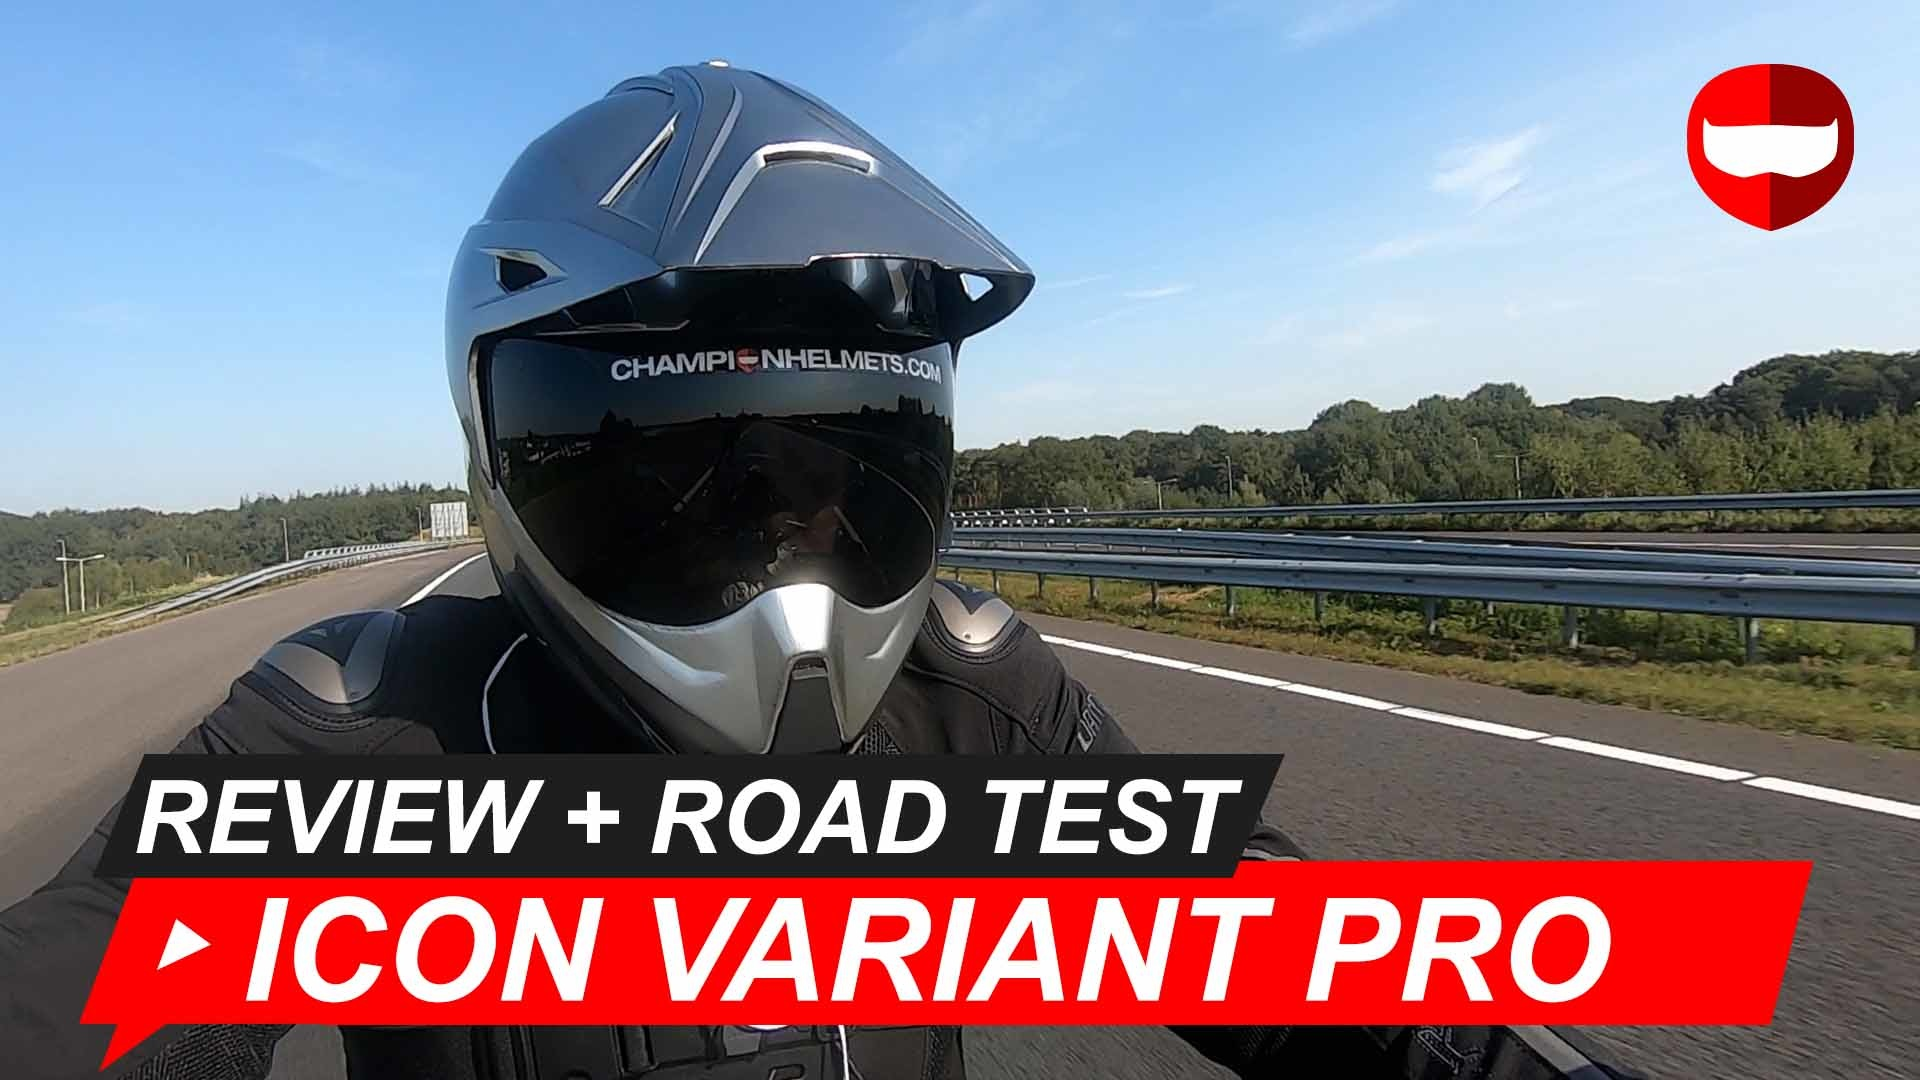 Icon Variant Pro Review and Road Test + Video